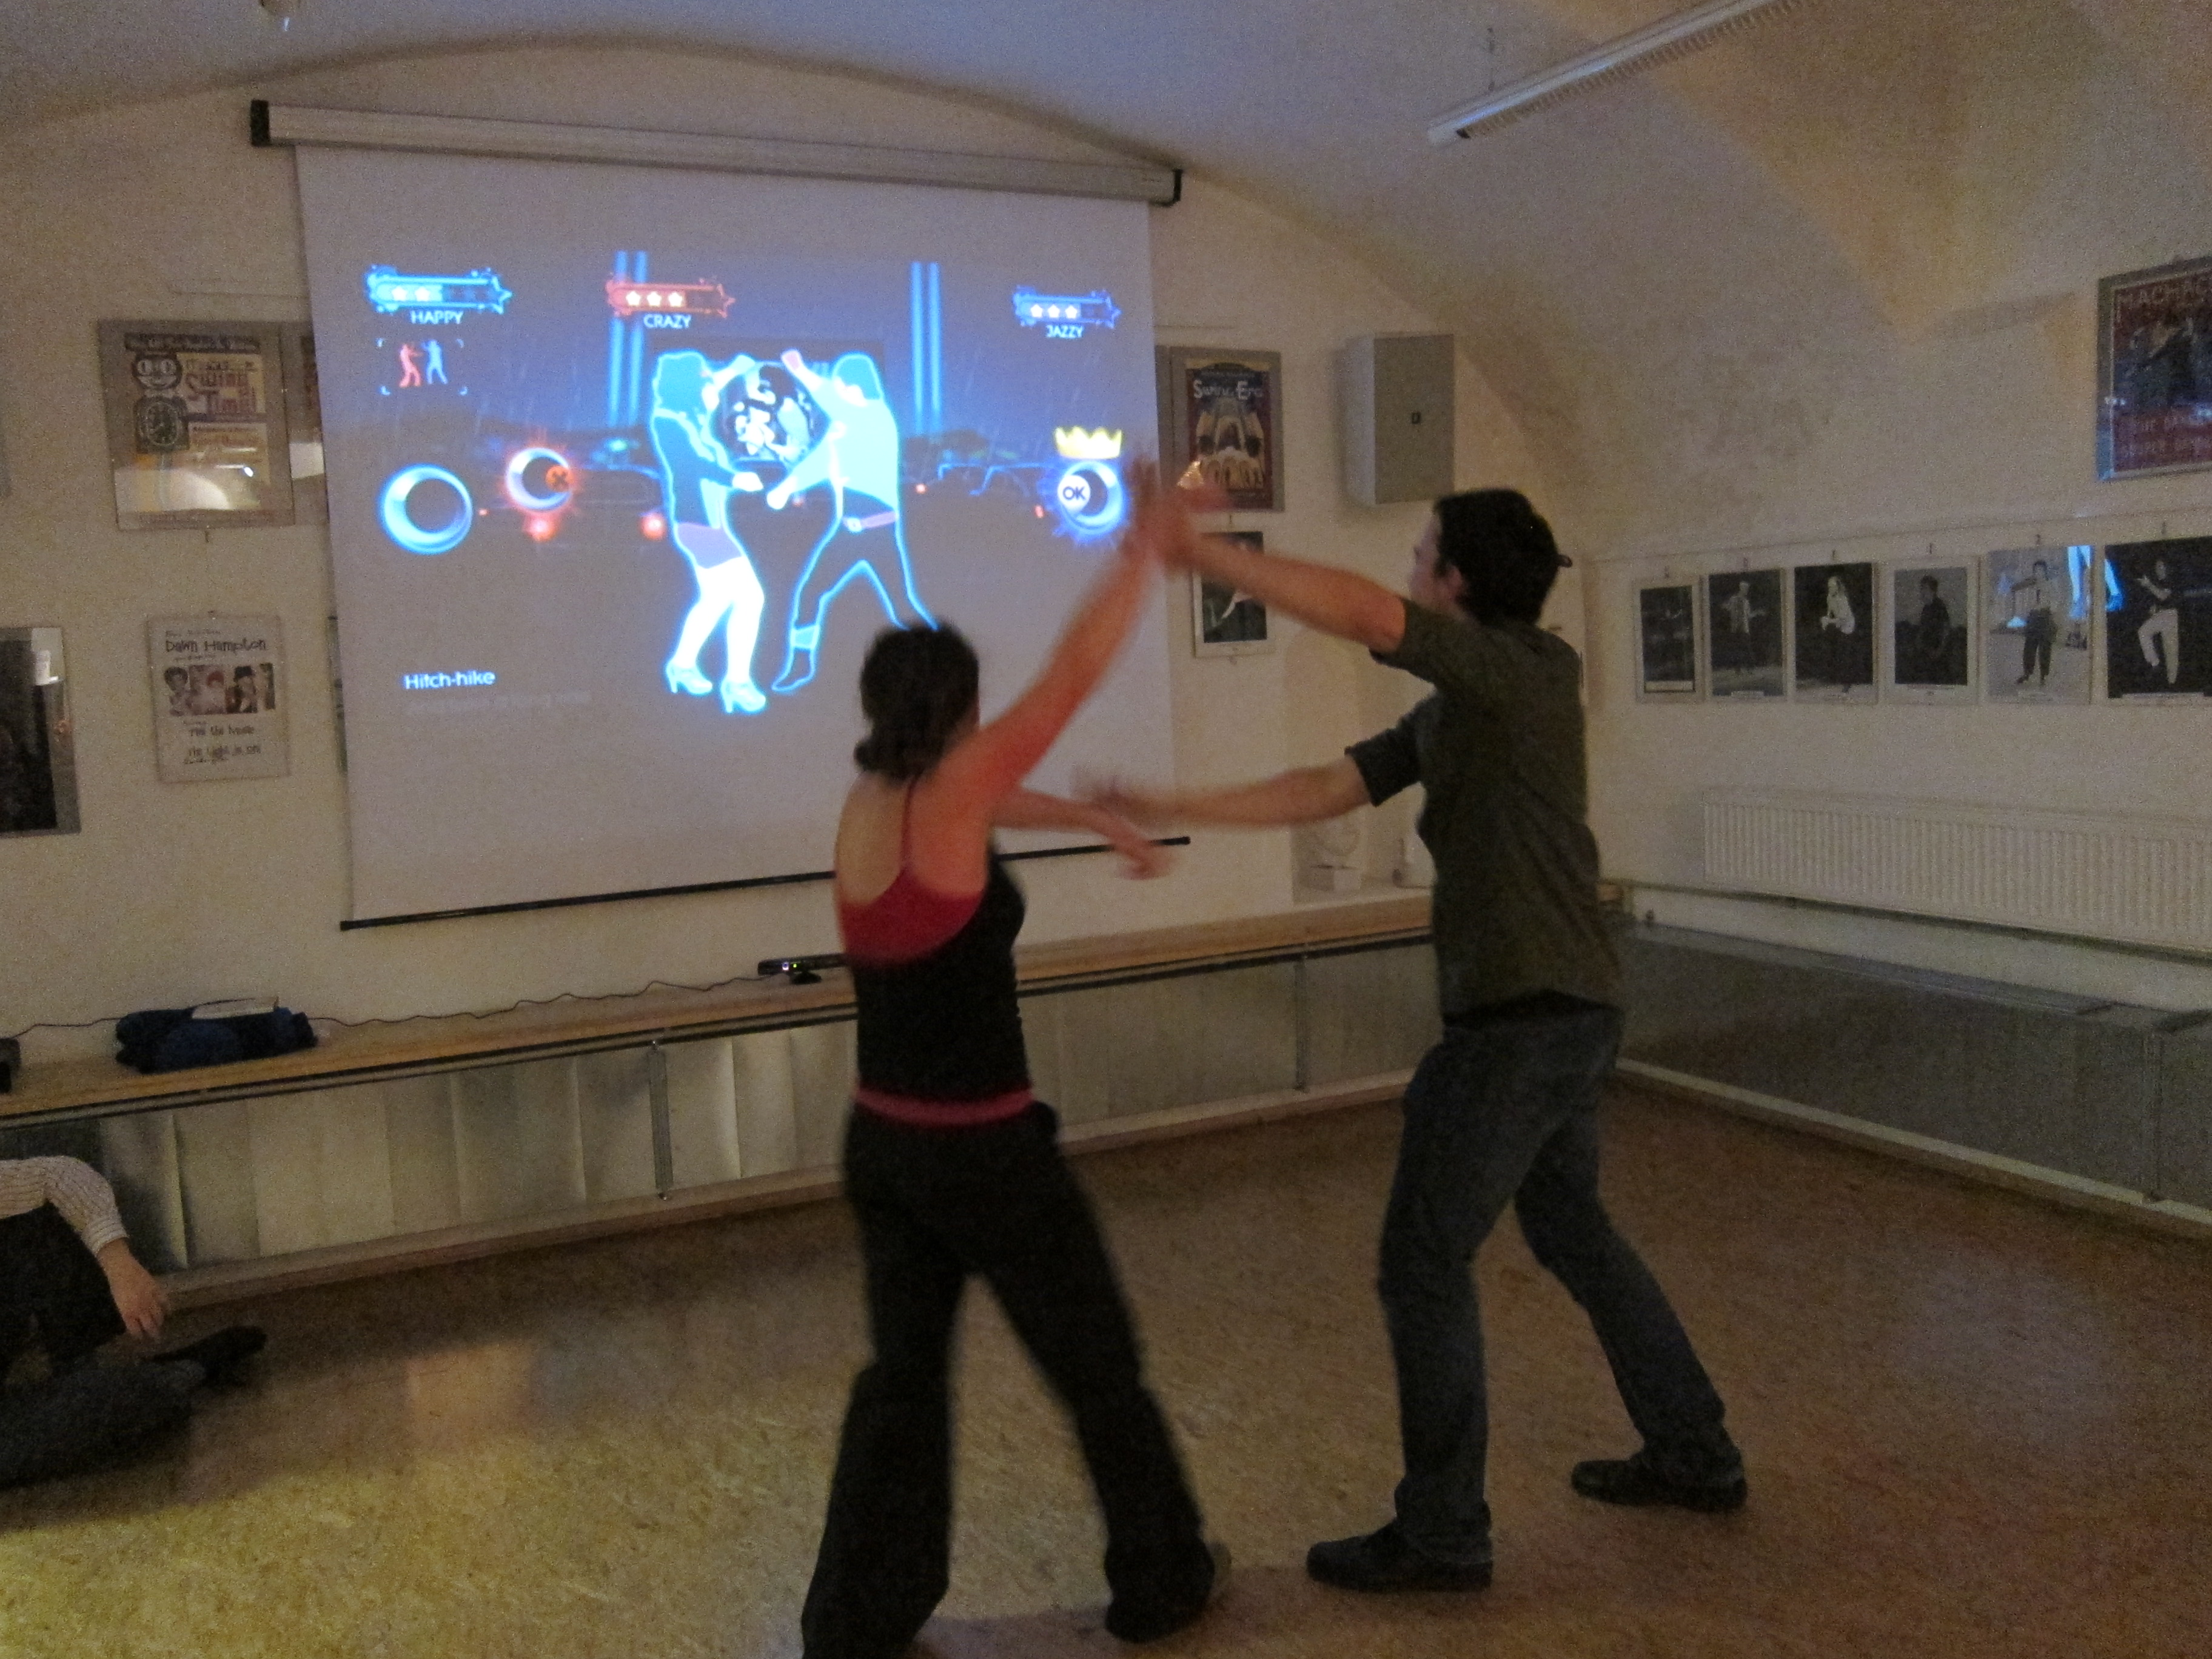 Image: And I discover XBox Kinect Dancing